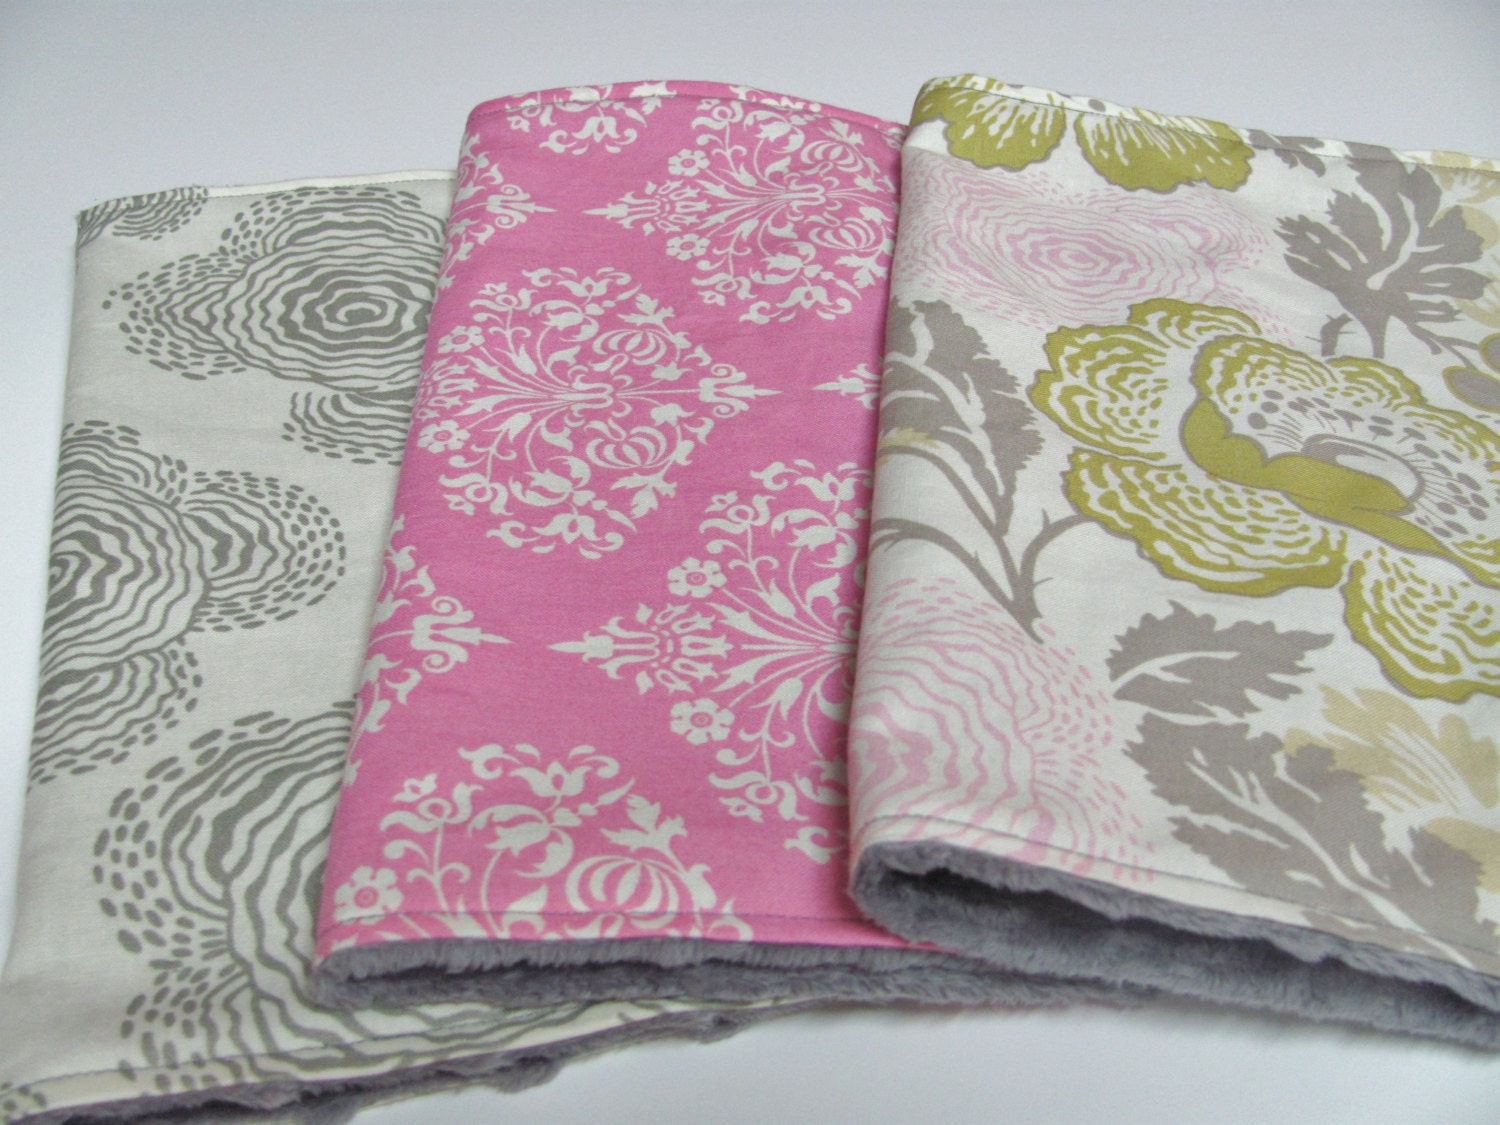 Baby Girl Burp Cloths Set of 3 Pink Grey by ButterBrickleBaby